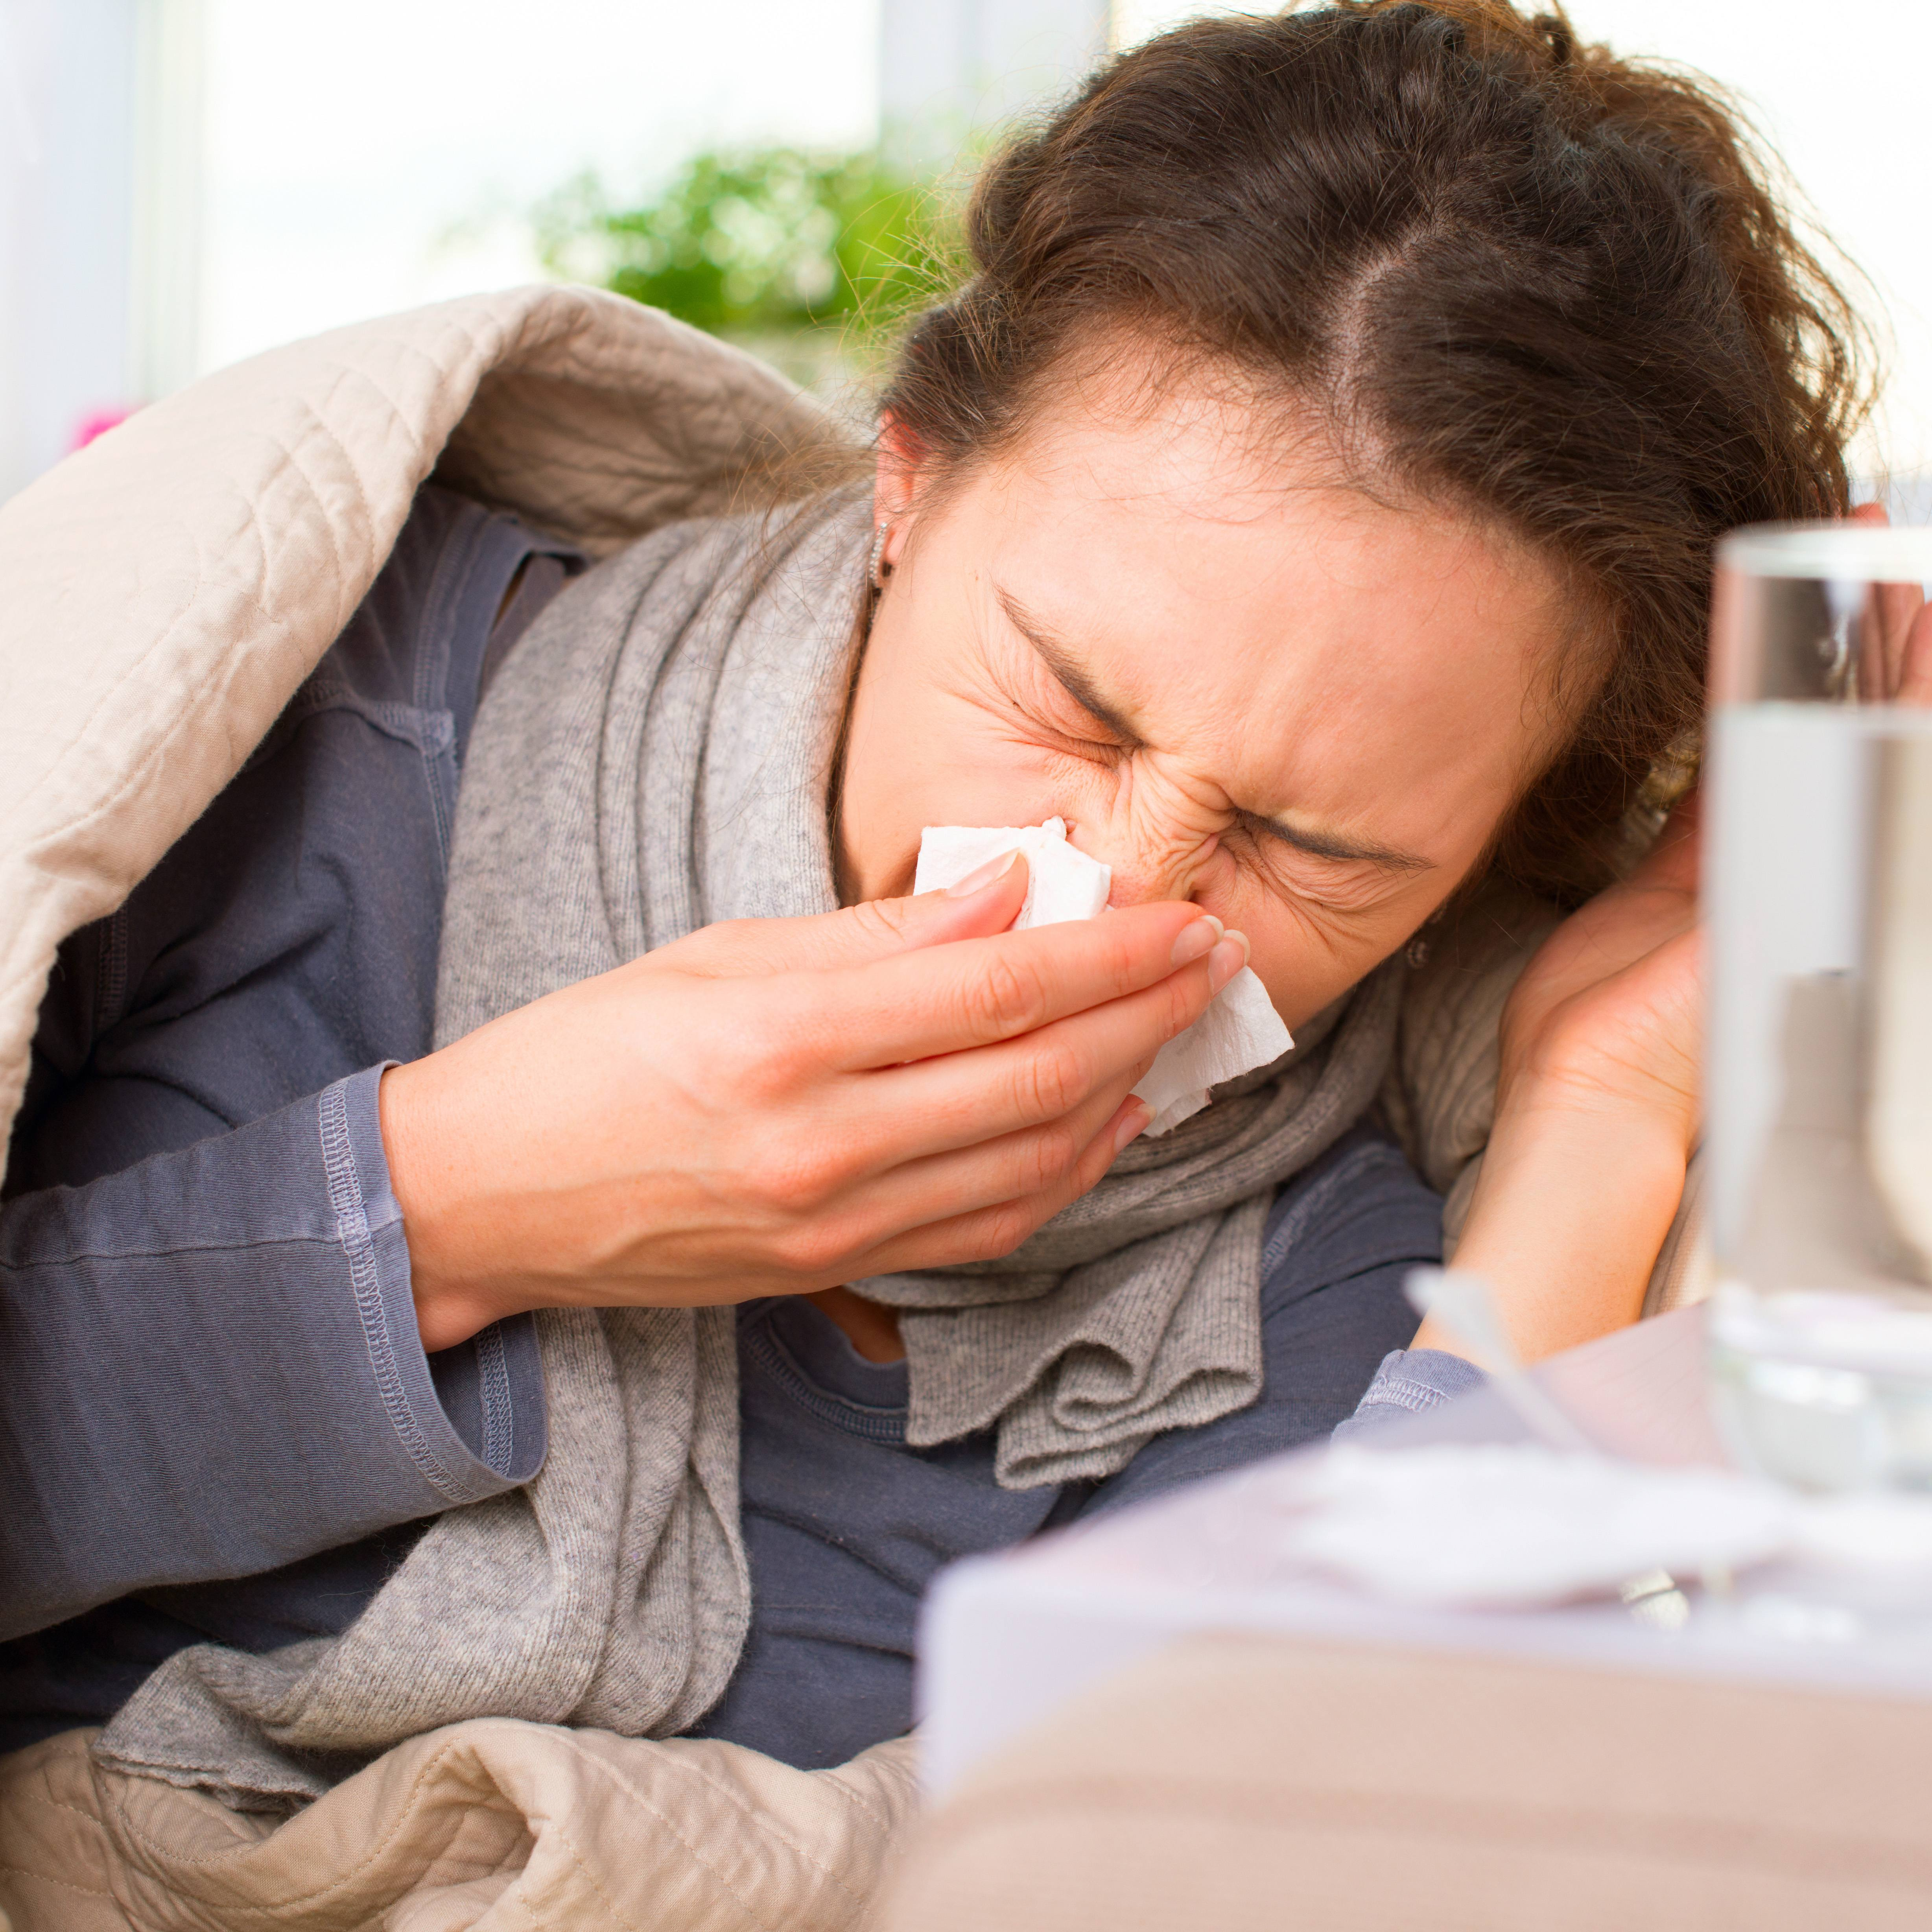 a middle aged woman sick in bed, sneezing into a tissue